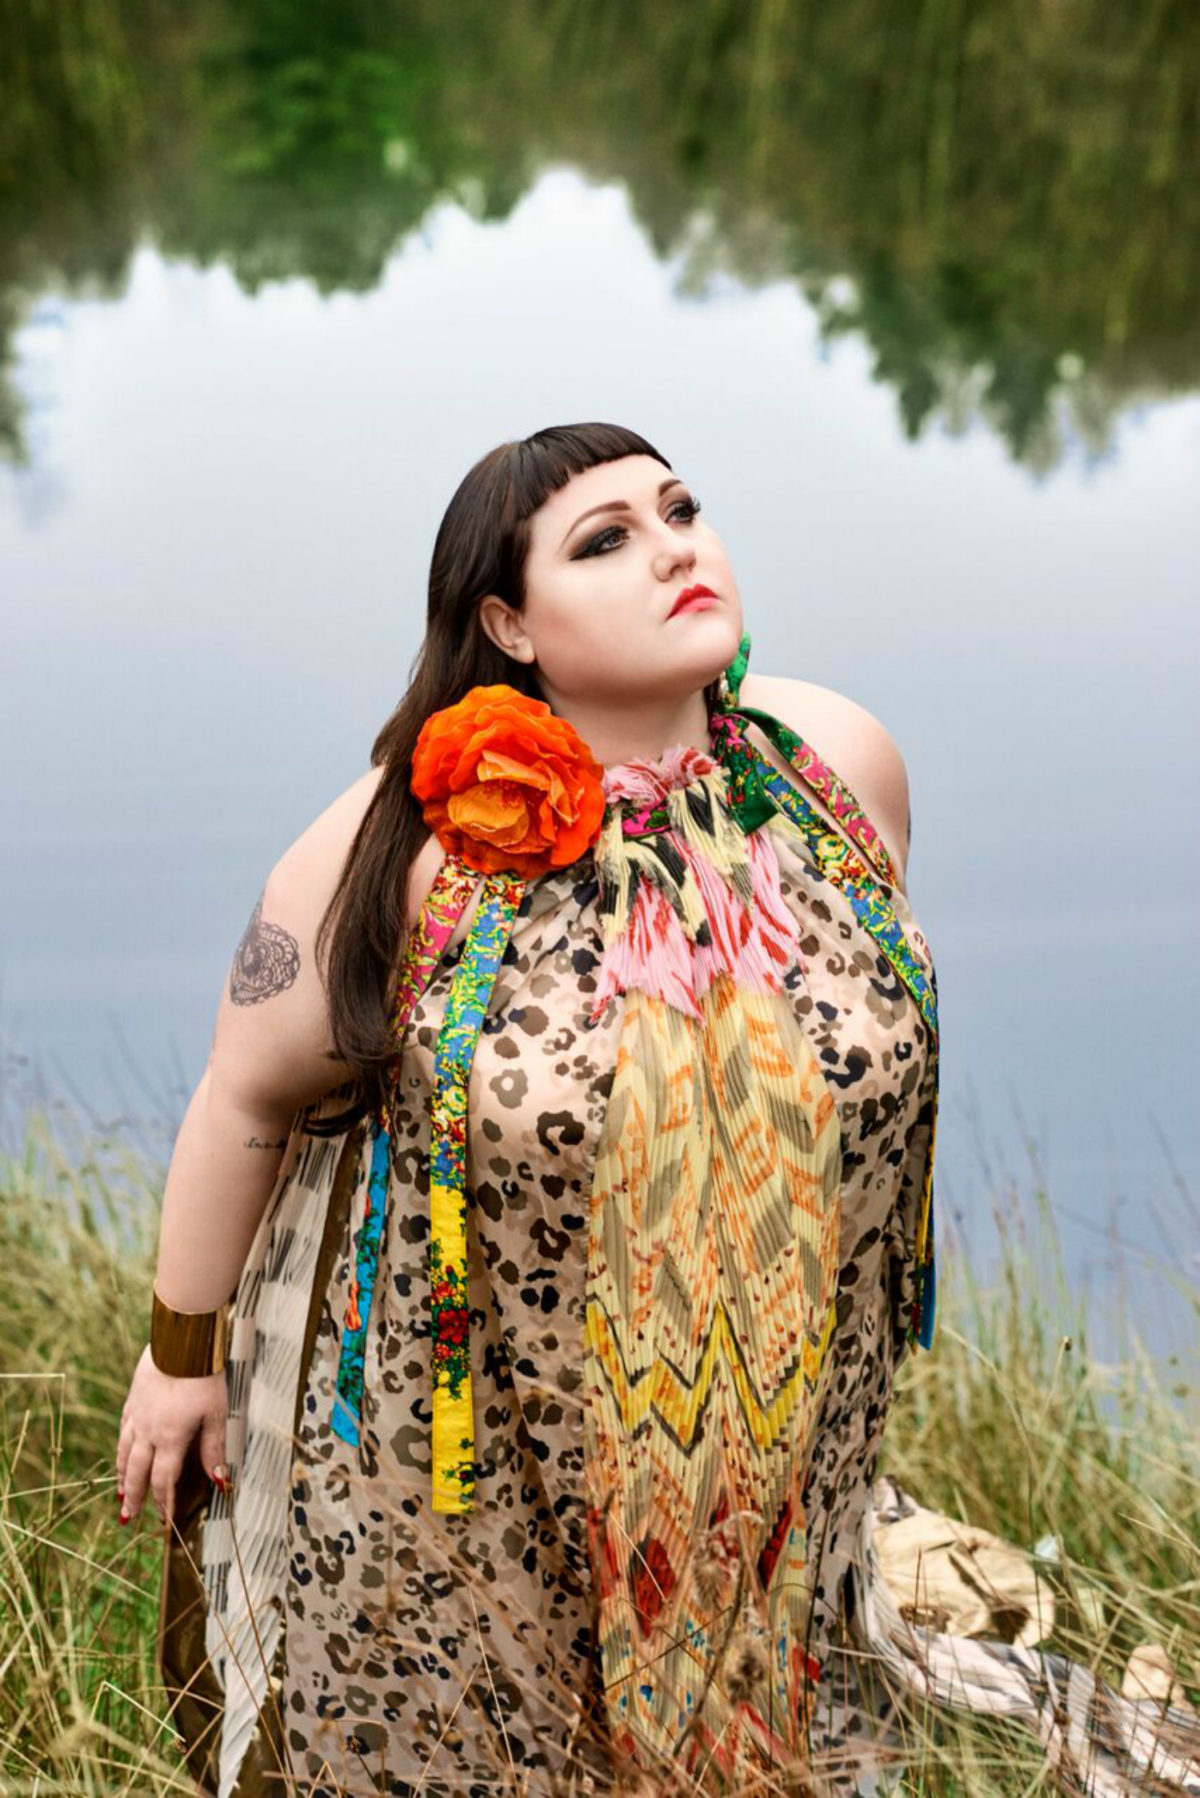 BETH DITTO INTERVIEW MUSIC NEWS GOSSIP HEAVY CROSS POLITICS